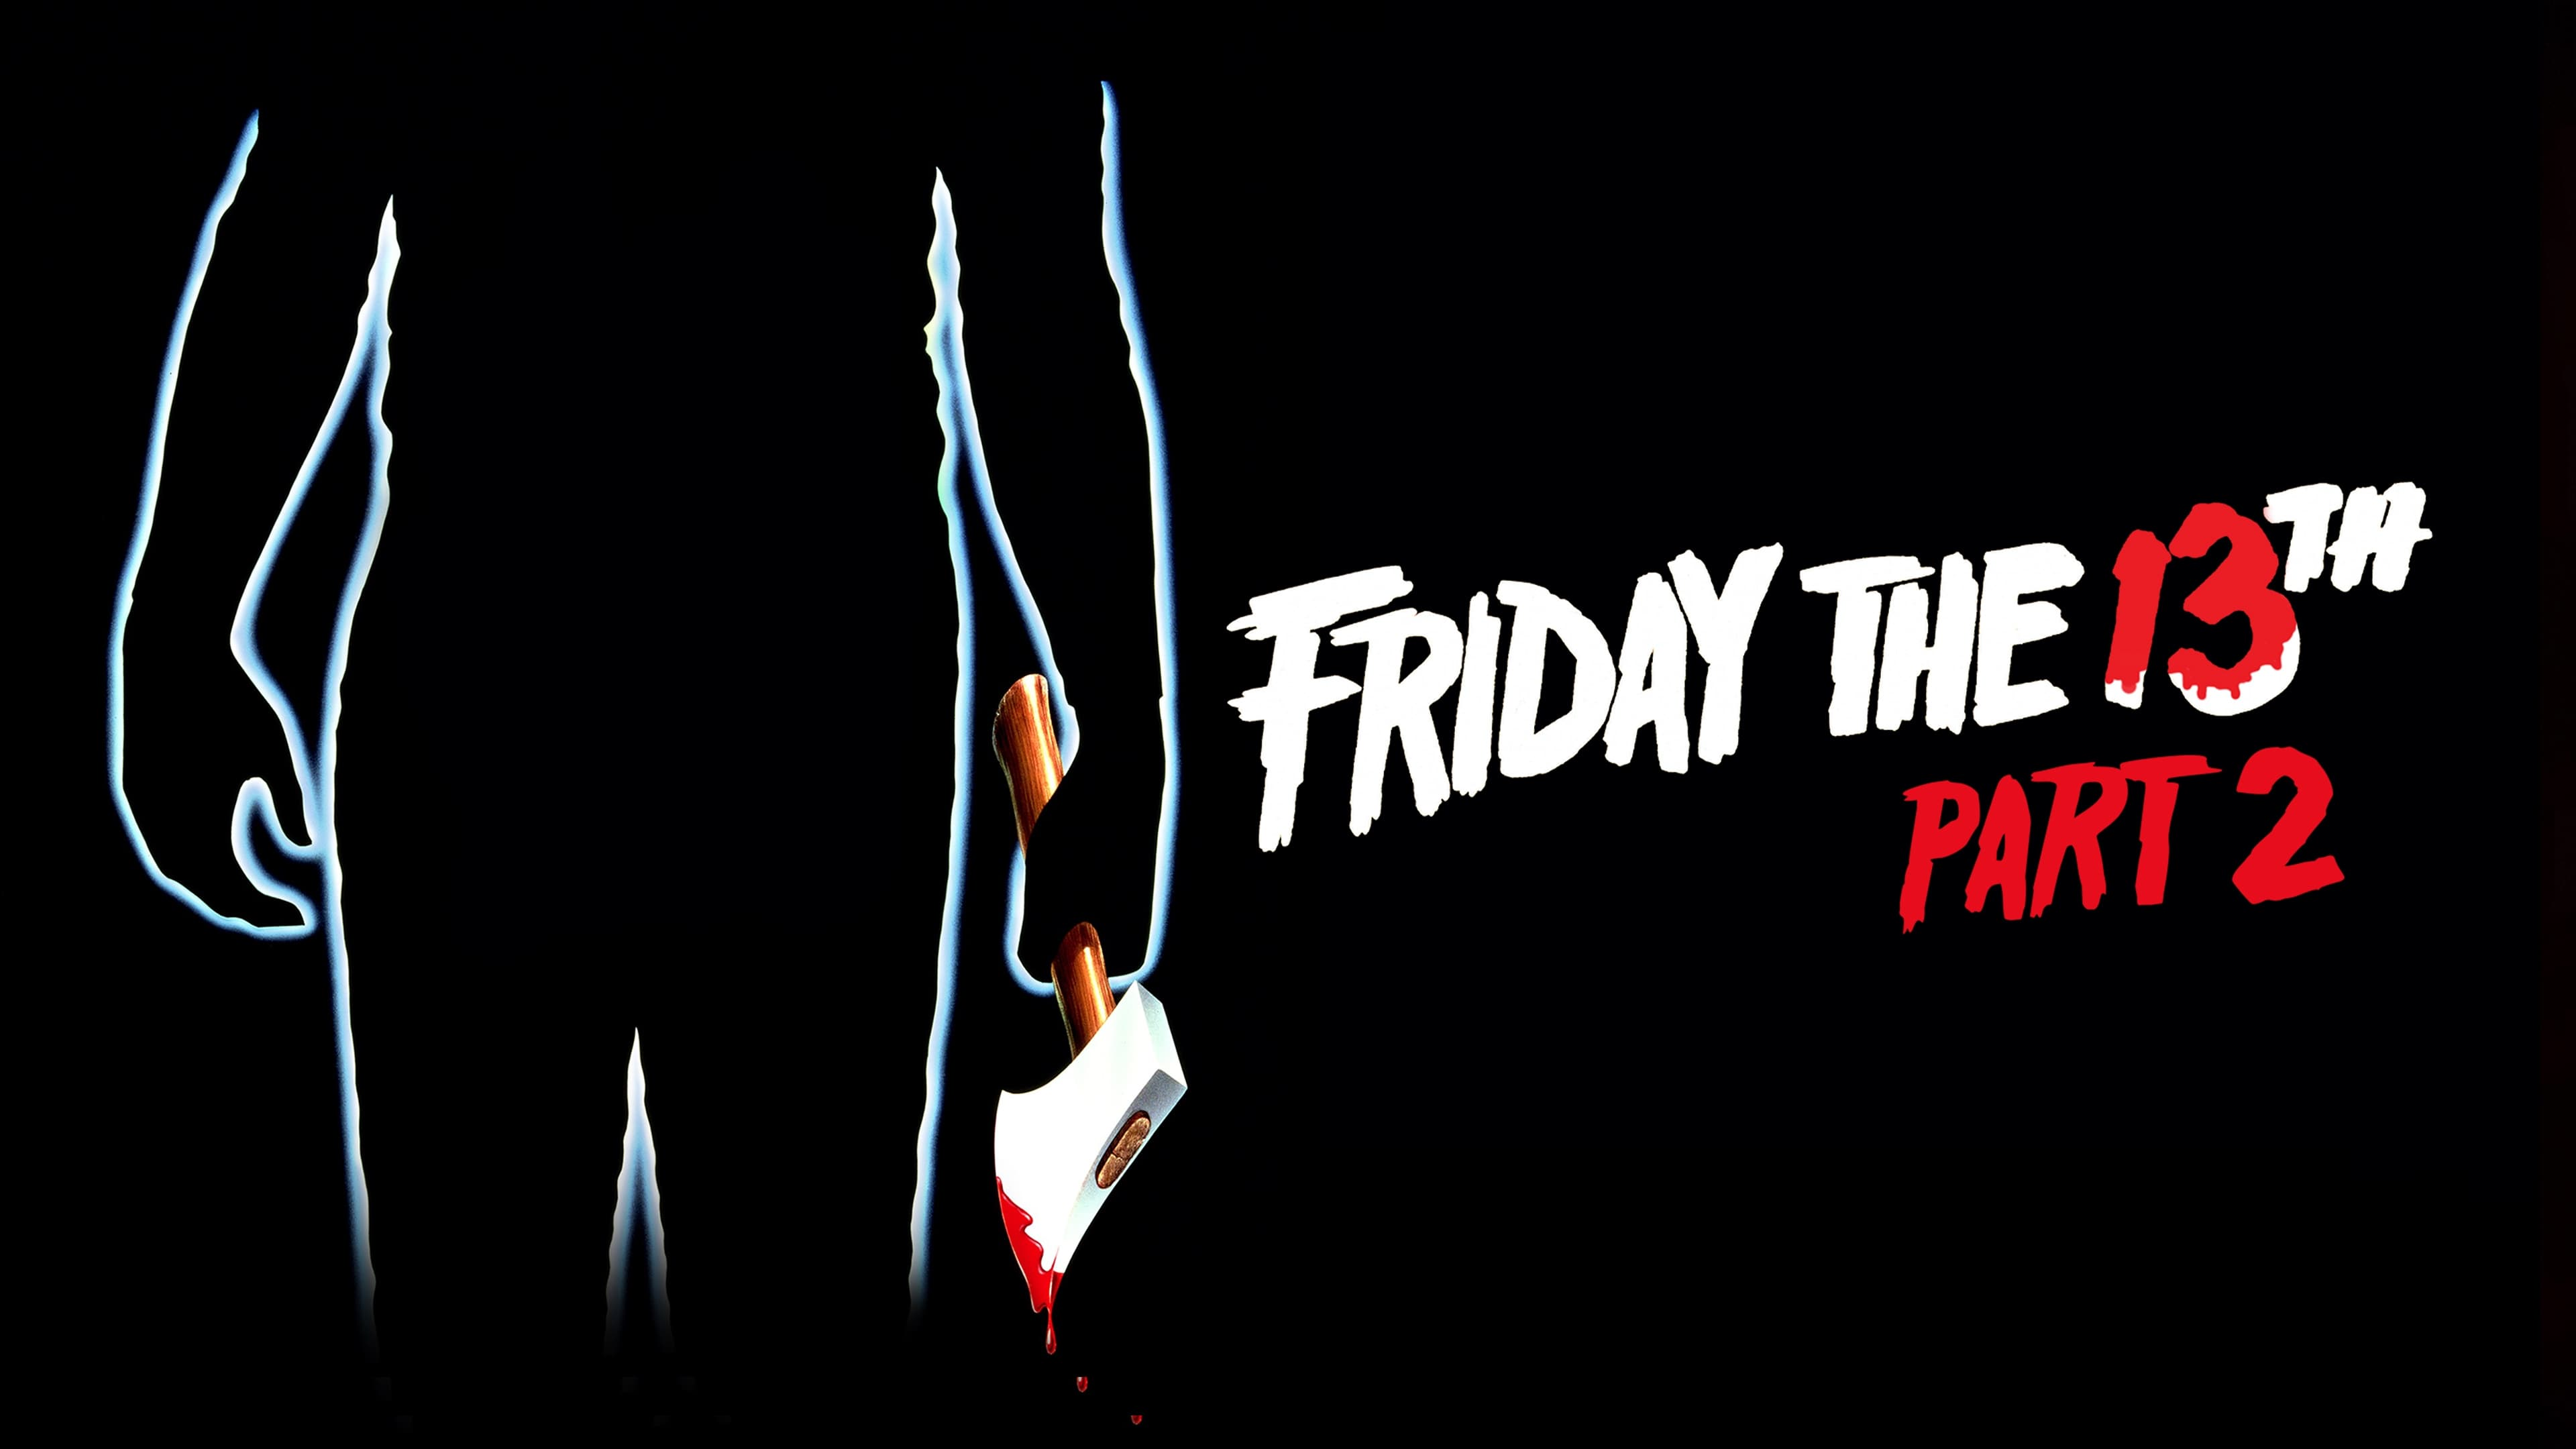 Friday the 13th Part 2